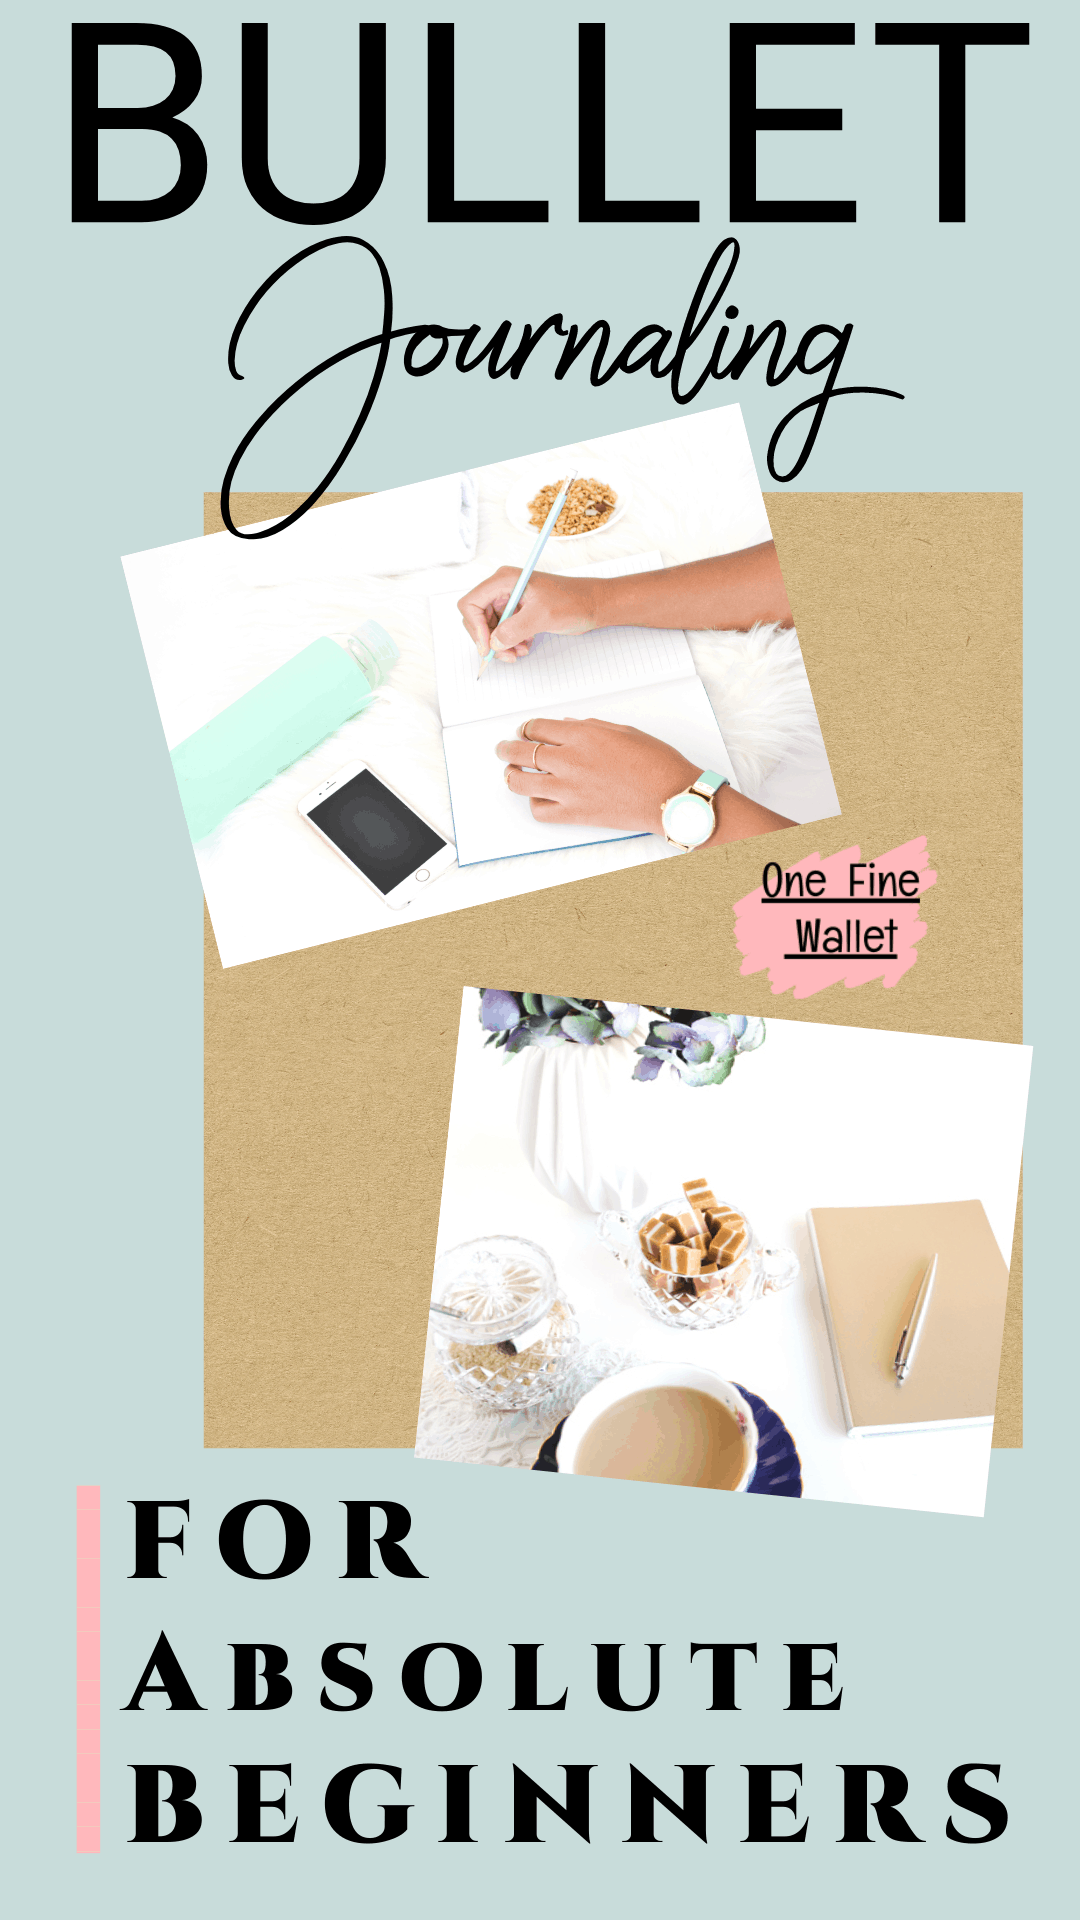 Want to have the best year ever?! Learn how to start a bullet journal as a beginner and organize your life. With information on layout ideas, index, and creating weekly spreads #bulletjournal #bulletjournalideas